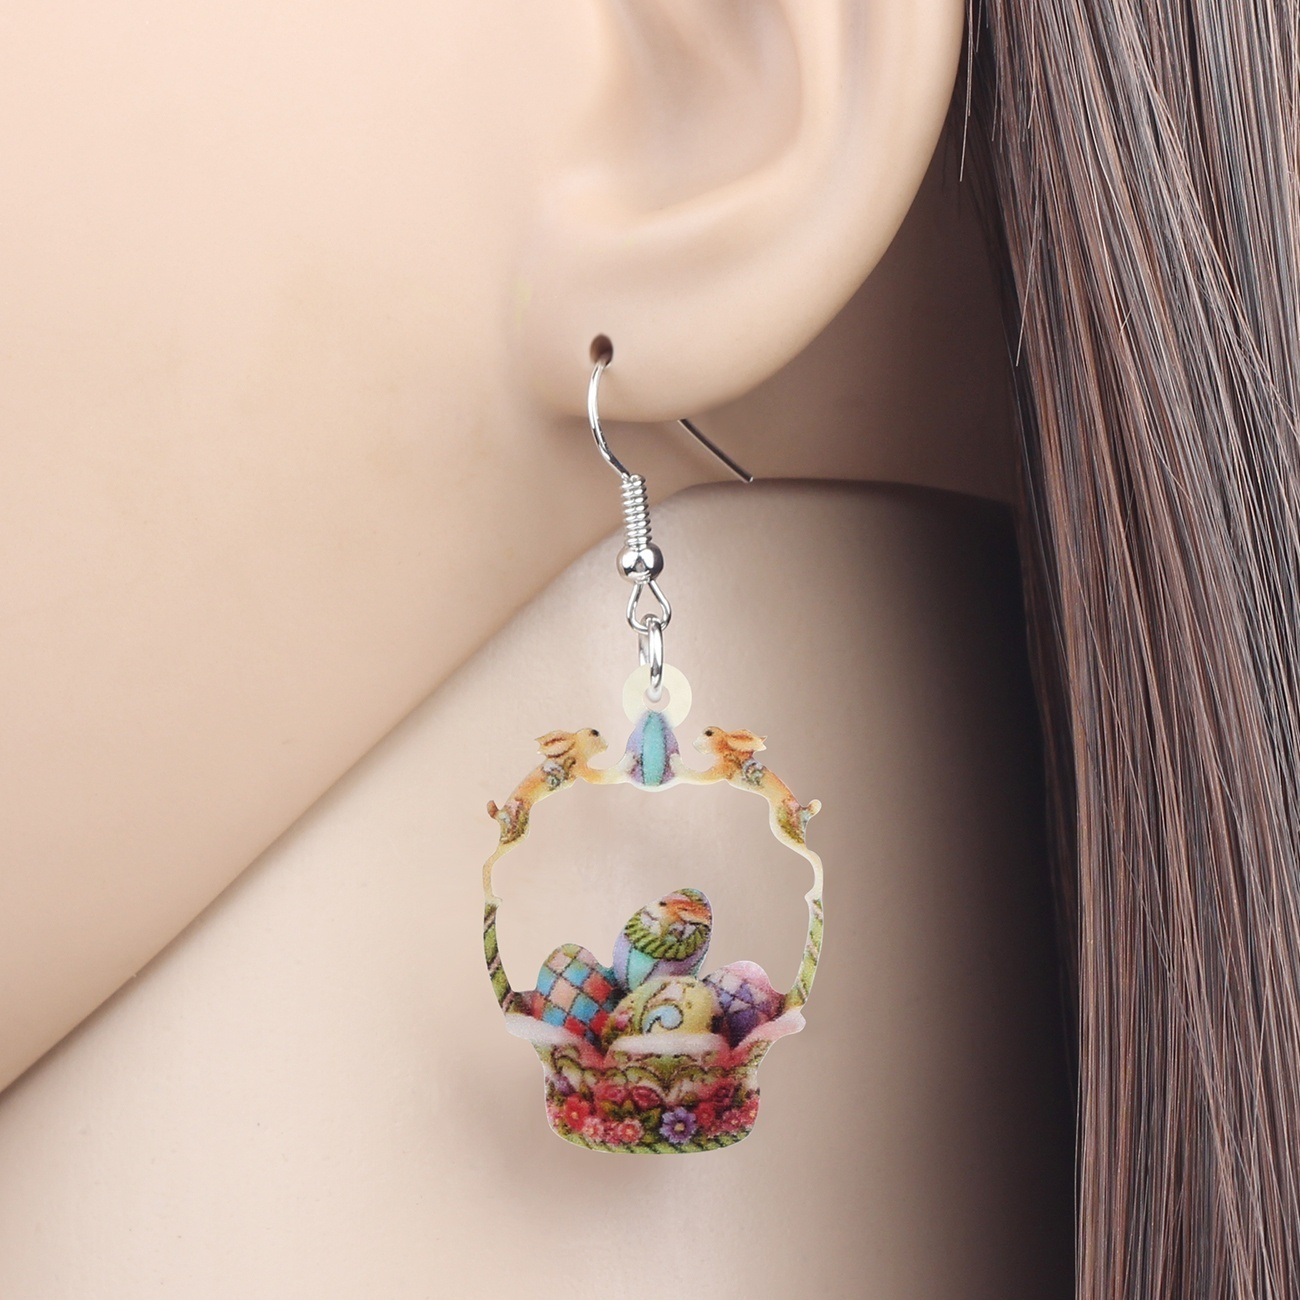 Acrylic Easter Eggs Bunny Floral Baskets Earrings Big Drop Dangle Jewelry Novelty Pendants Decoration Festival Accessories Gifts For Women Girls Teens Charm Trendy Ornaments